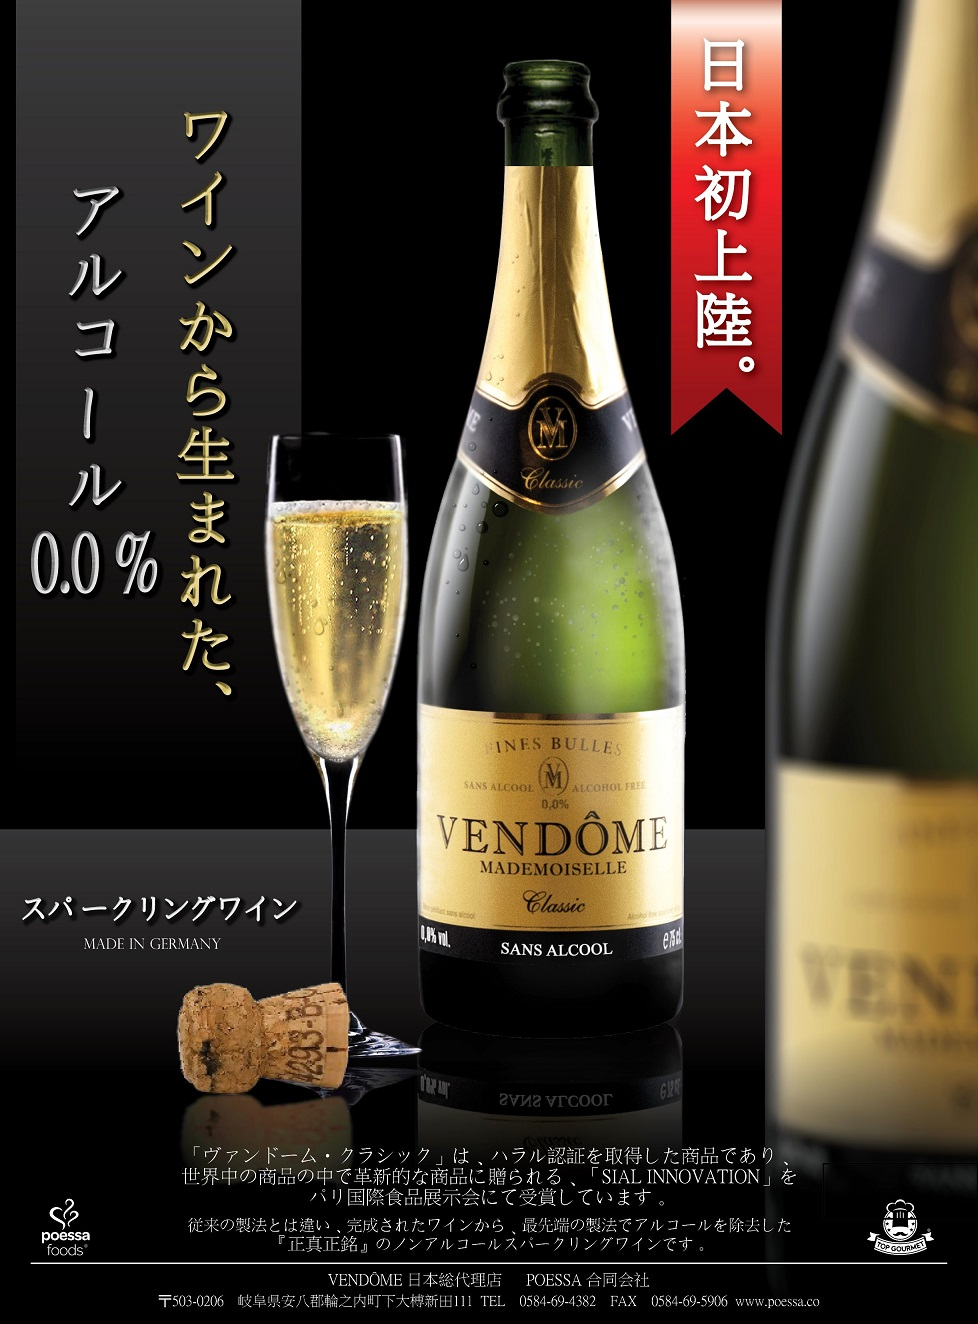 Where you can buy Vendome